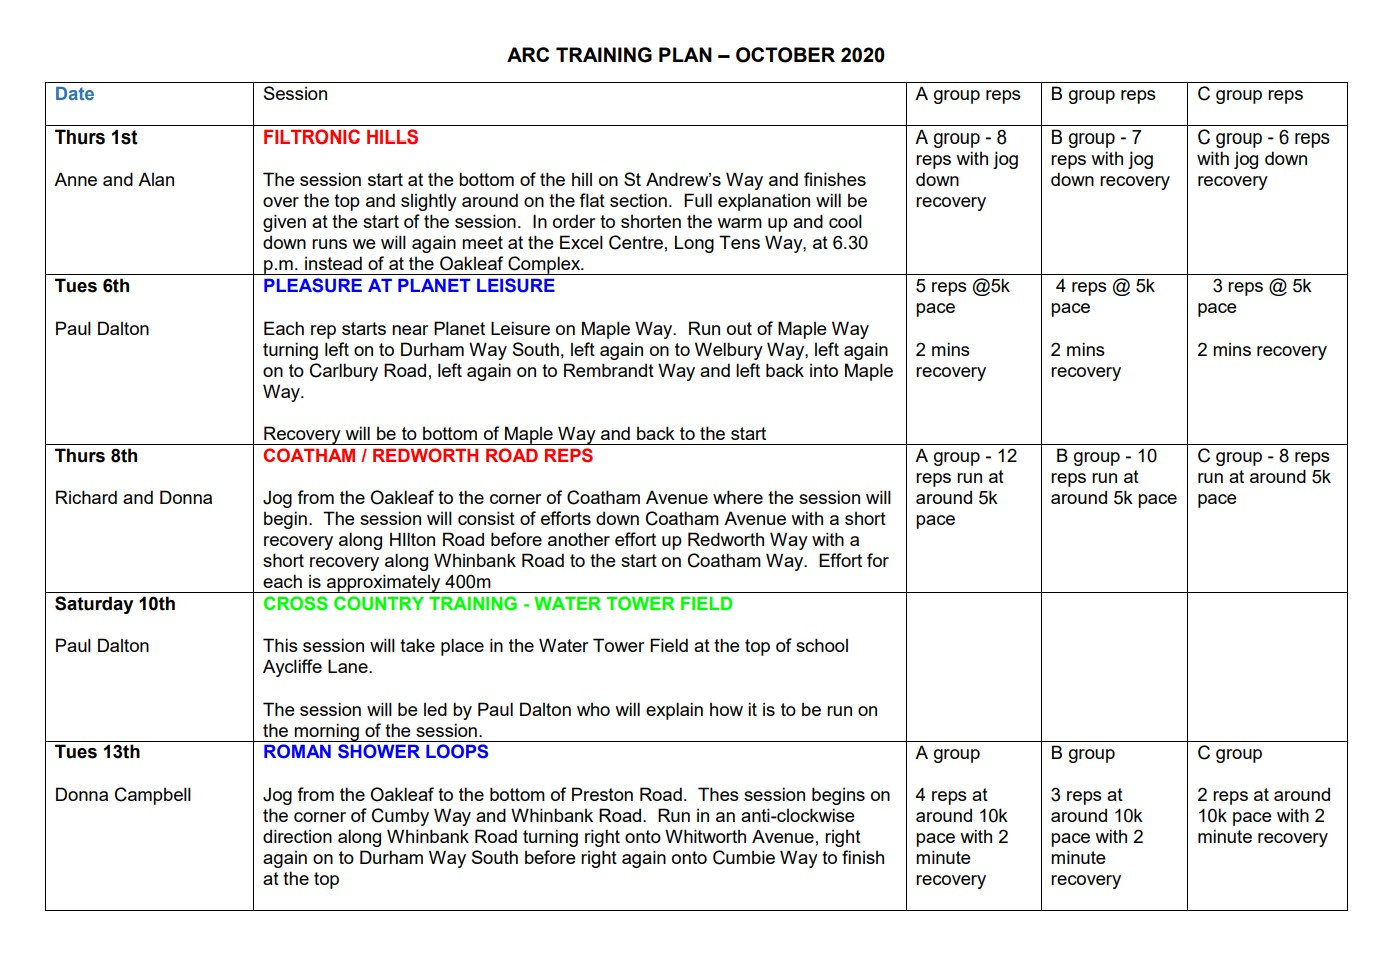 ARC Trg Plan - Oct 2020 Amended A